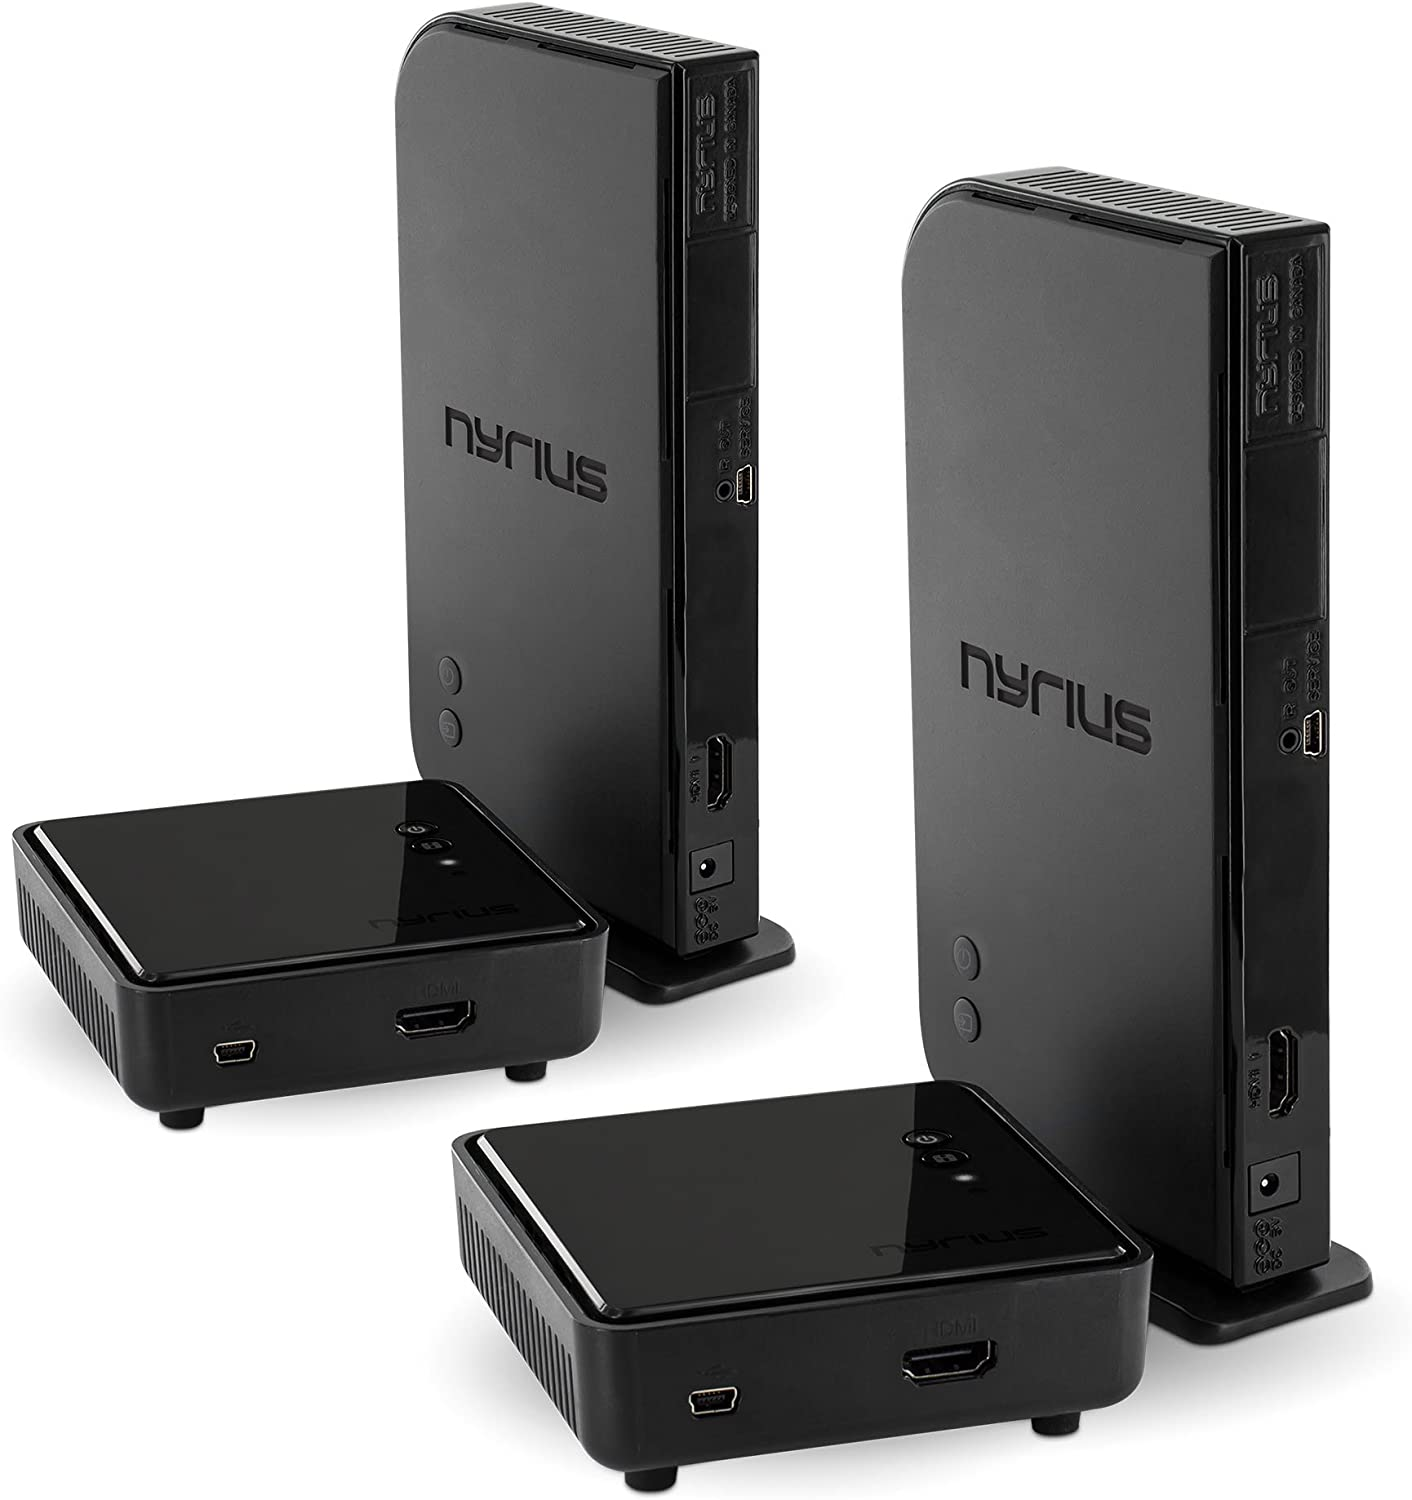 Nyrius Aries Home HDMI Digital Wireless Transmitter & Receiver for HD 1080p Video Streaming with IR Remote Extender (NAVS500) - Pack of 2